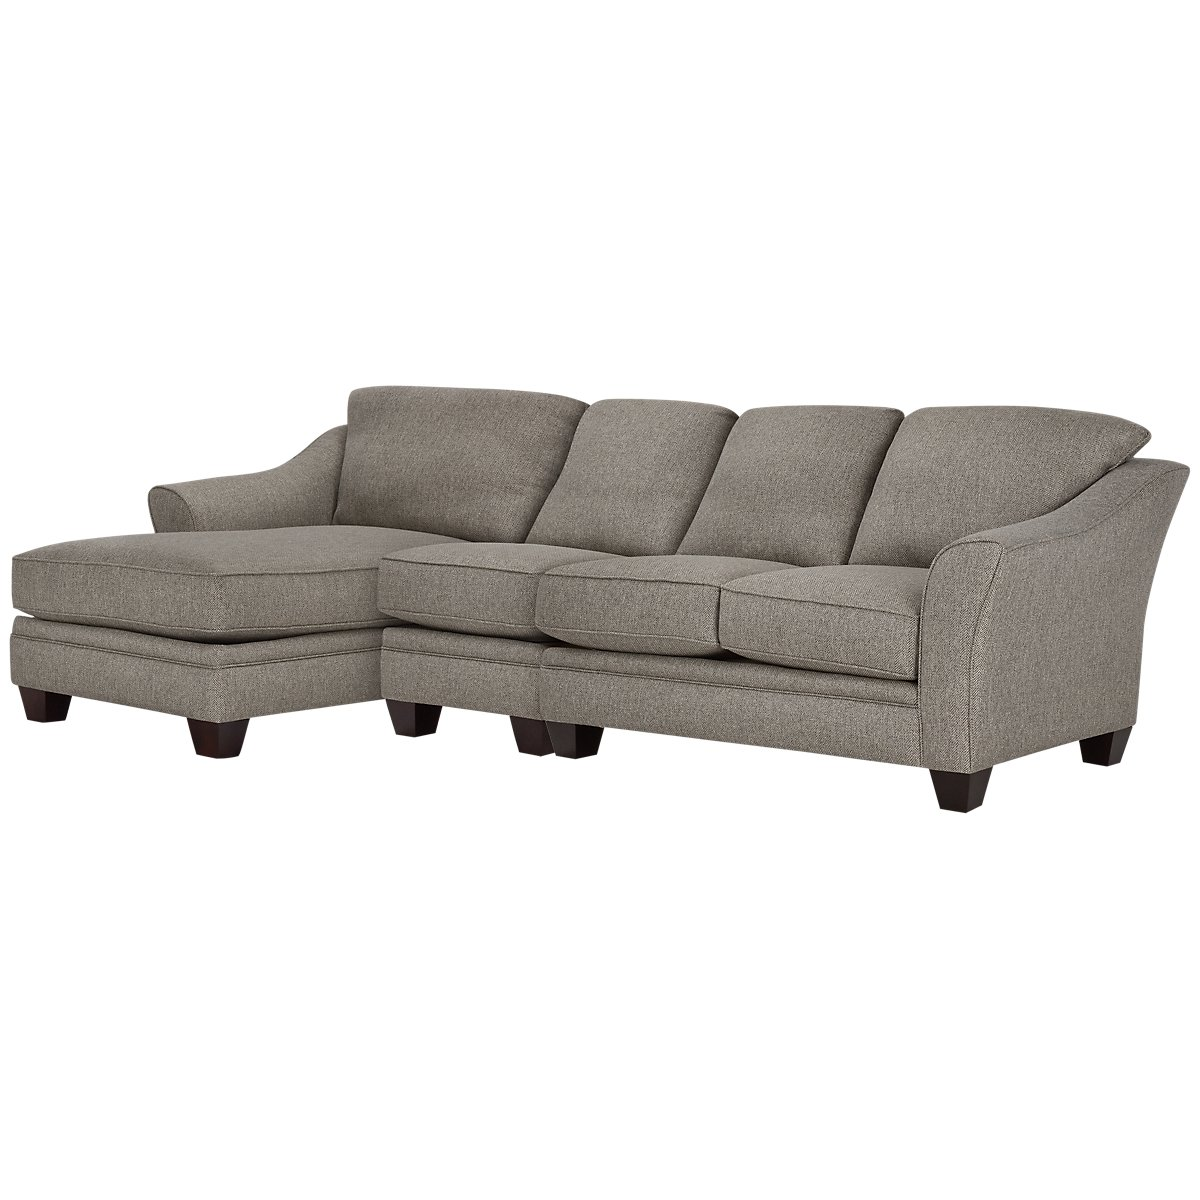 Avery Dark Gray Fabric Small Left Chaise Sectional